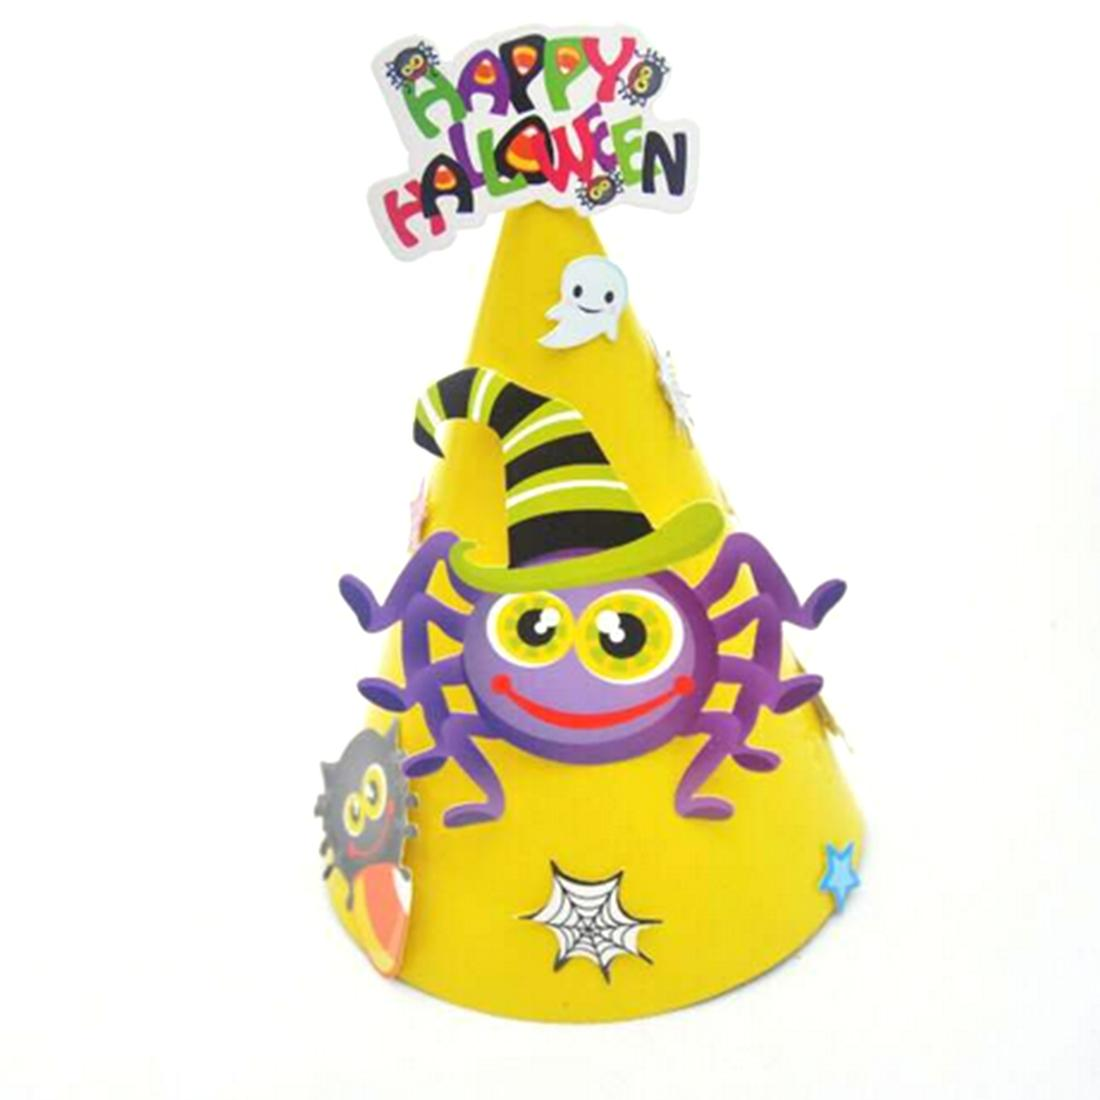 Cute Halloween Cartoon Pattern Hat Kids Paper Coned Toy Festival Decor Party Decoration Spider Pumpkin Diy Birthday Hats First